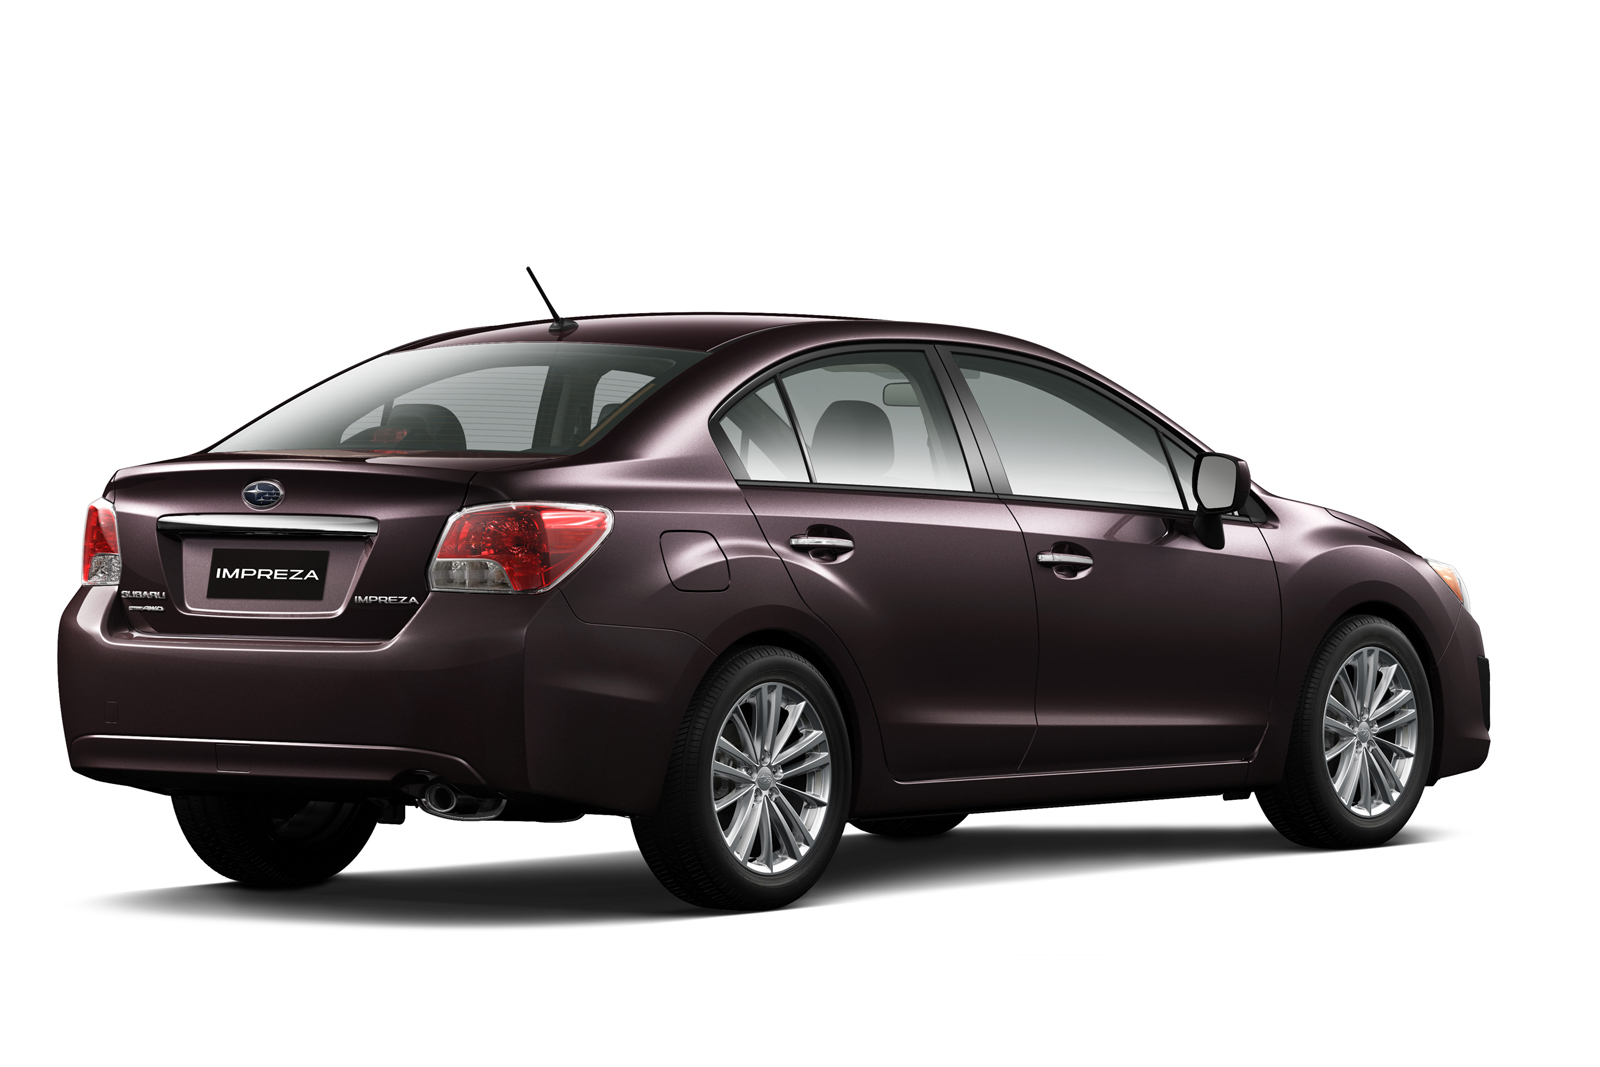 2012 Subaru Impreza 4Door 1 NEW 2012 IMPREZA, STARTS AT $18,245 INTRODUCED FOR US MARKET